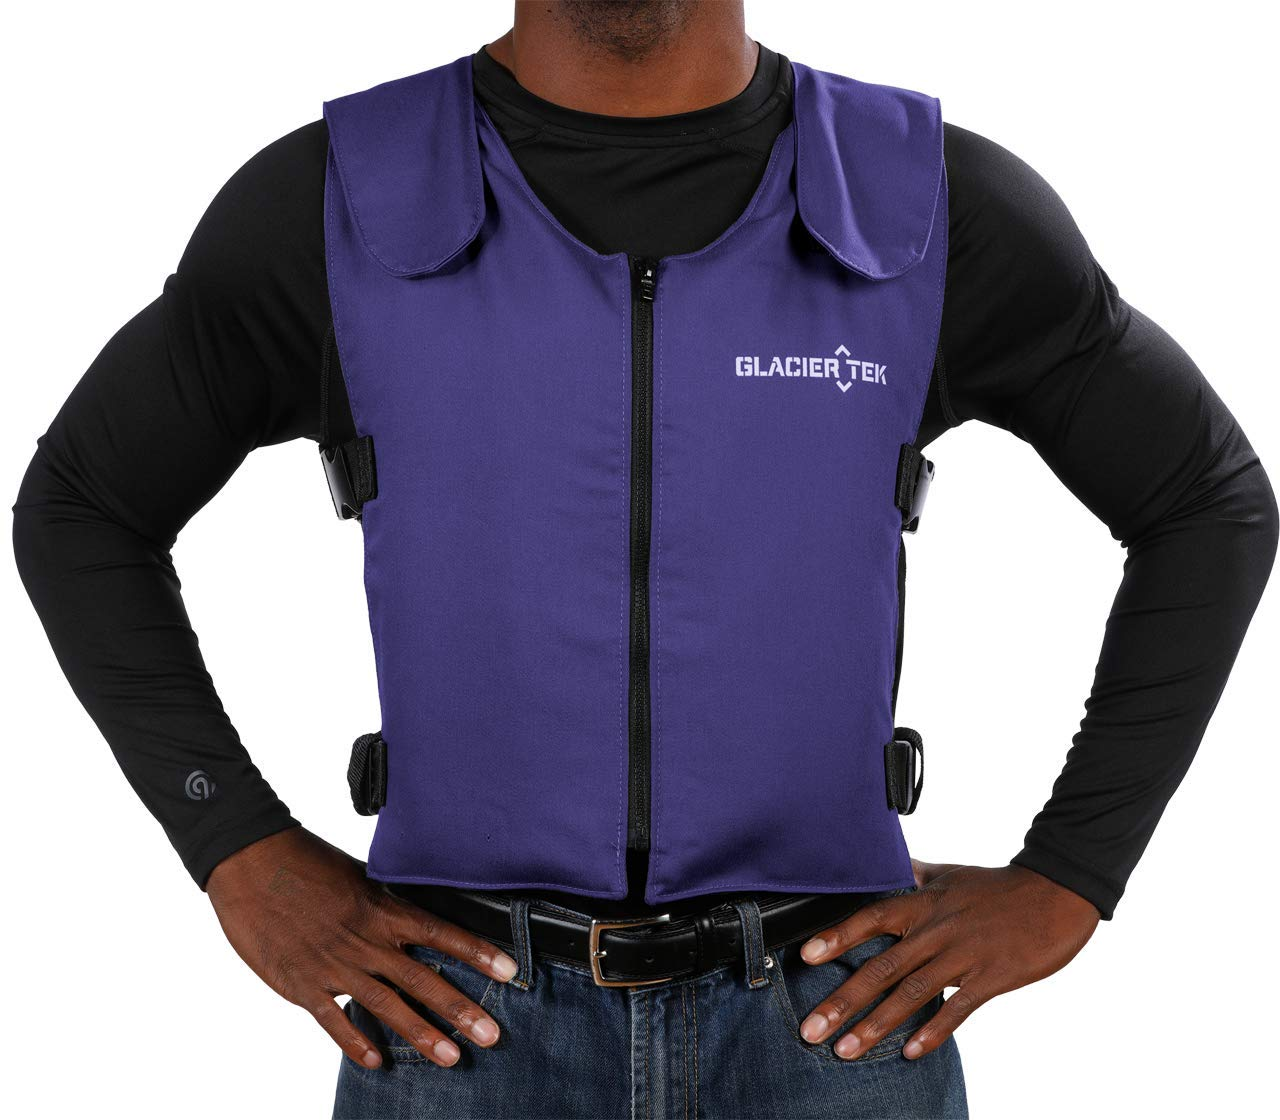 Glacier Tek Original Cool Vest with FR3 Flame-Retardant Banox Fabric and Nontoxic Cooling Packs Blue